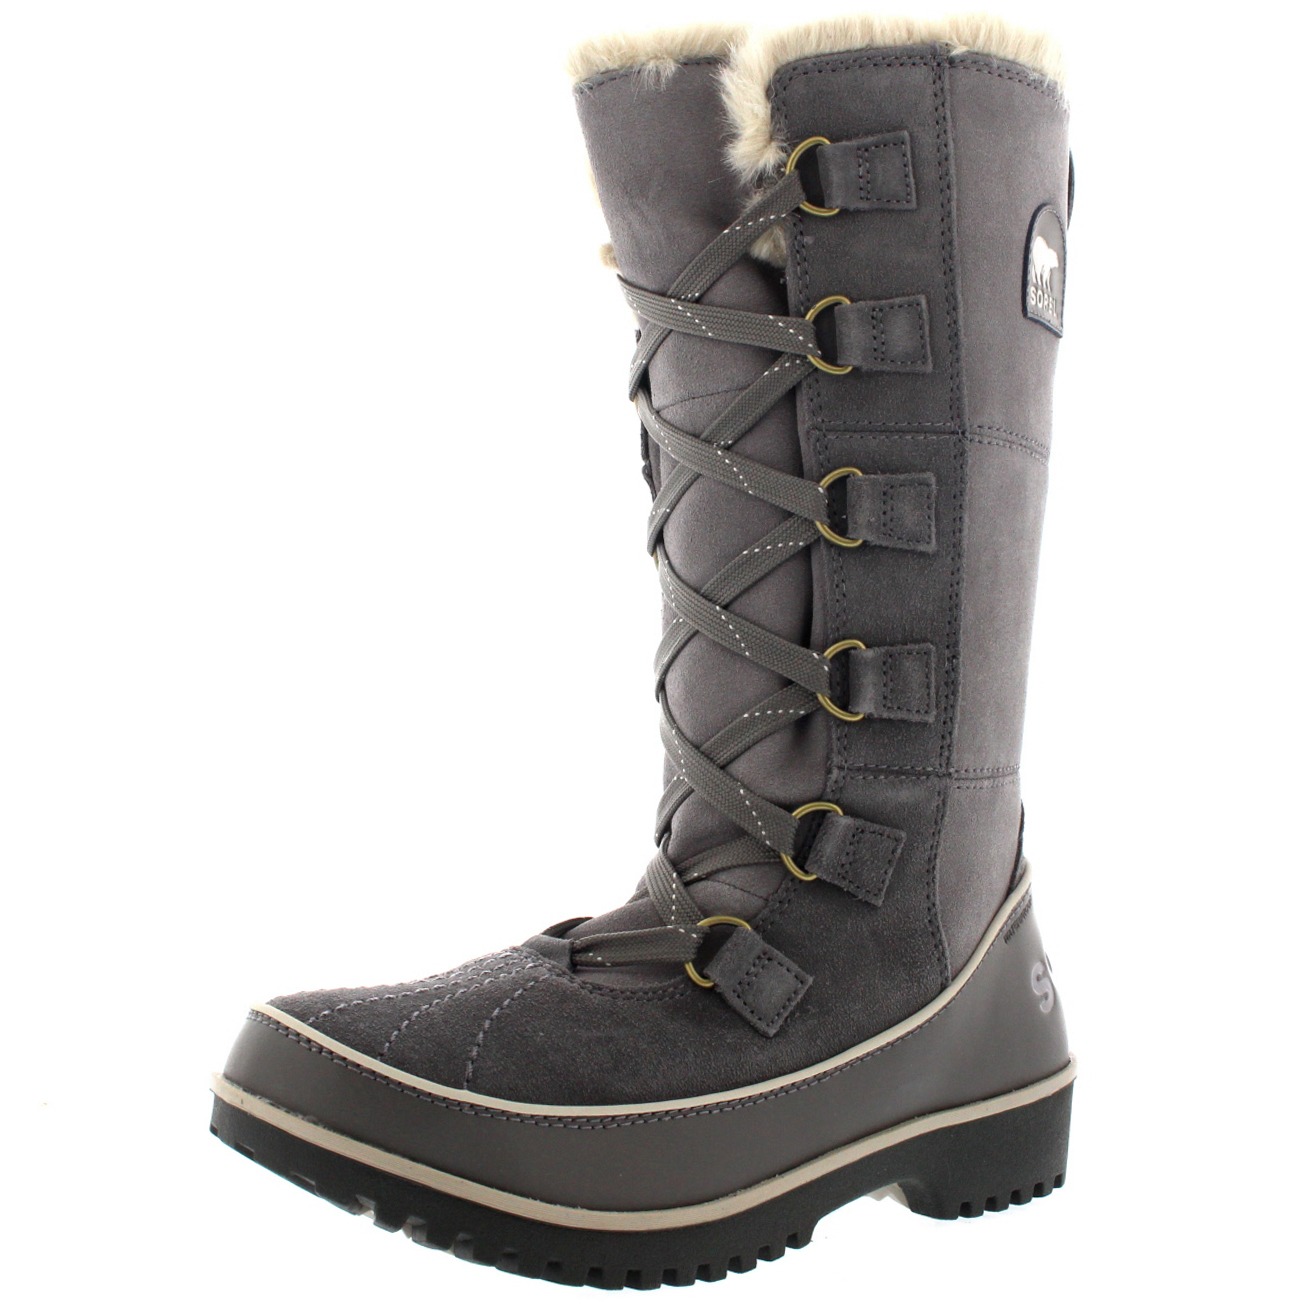 Brilliant  Sorel Tofino Cate Winter Snow Rain Mid Calf Waterproof Duck Boots UK 3